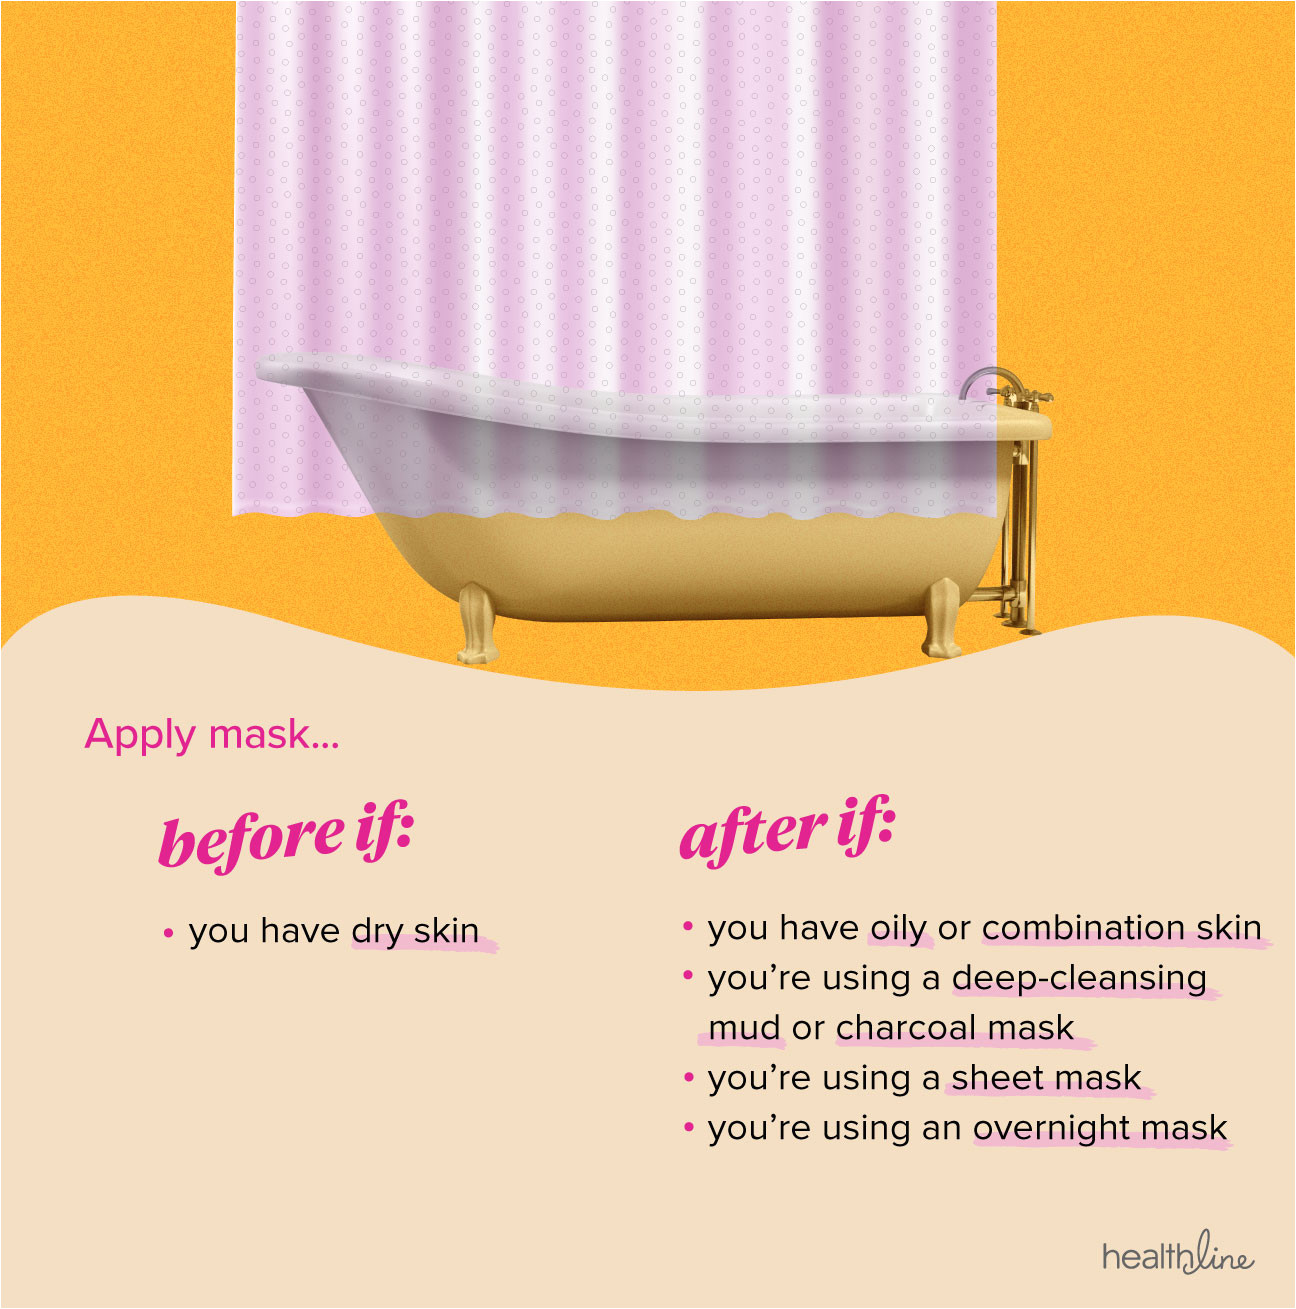 8731 face mask before or after shower 1296x1309 infographic jpg